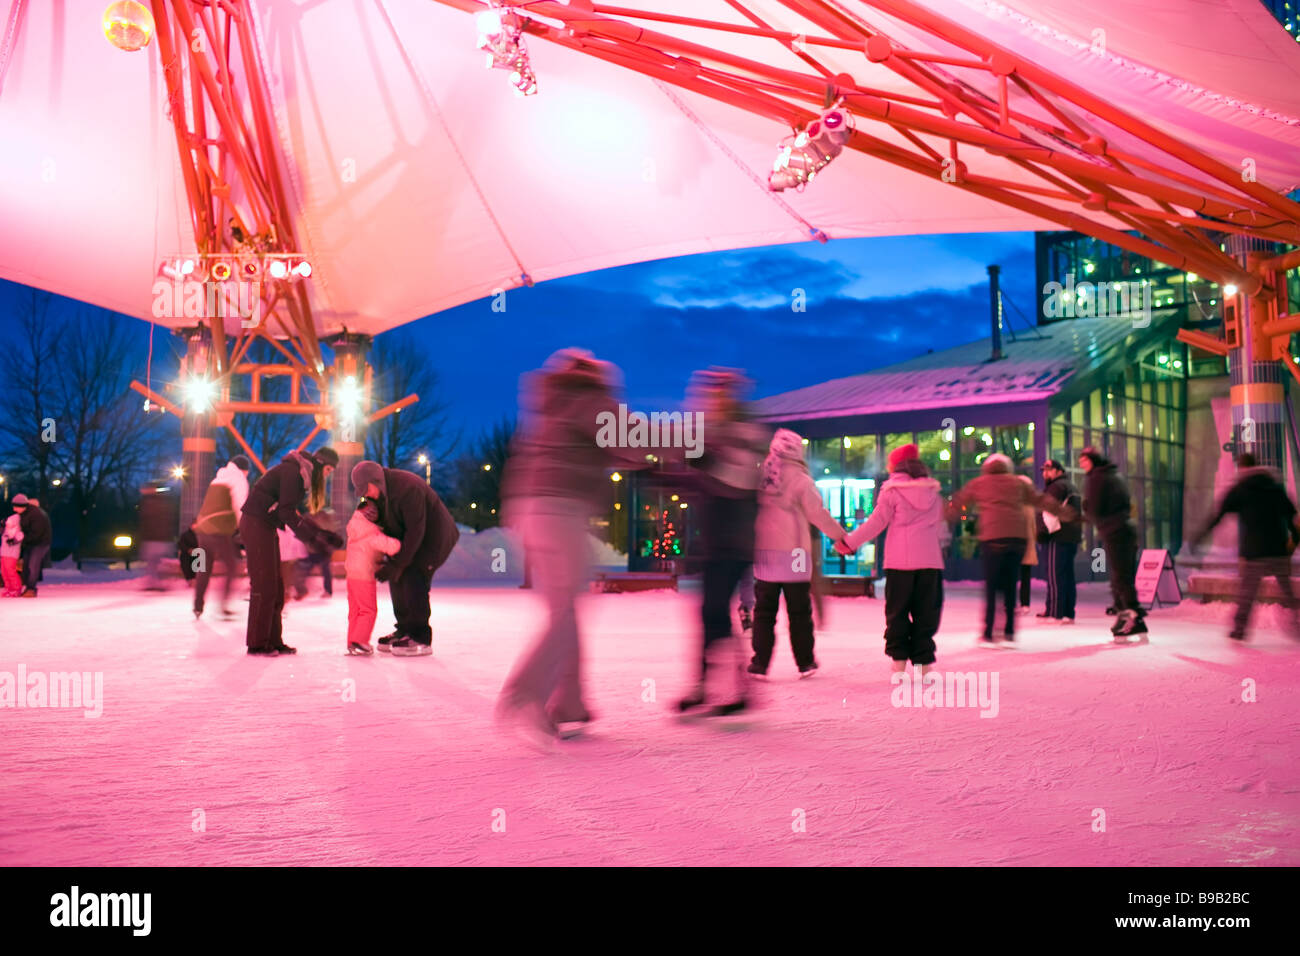 Ice Skaters at The Forks Plaza, downtown Winnipeg, Manitoba, Canada. - Stock Image